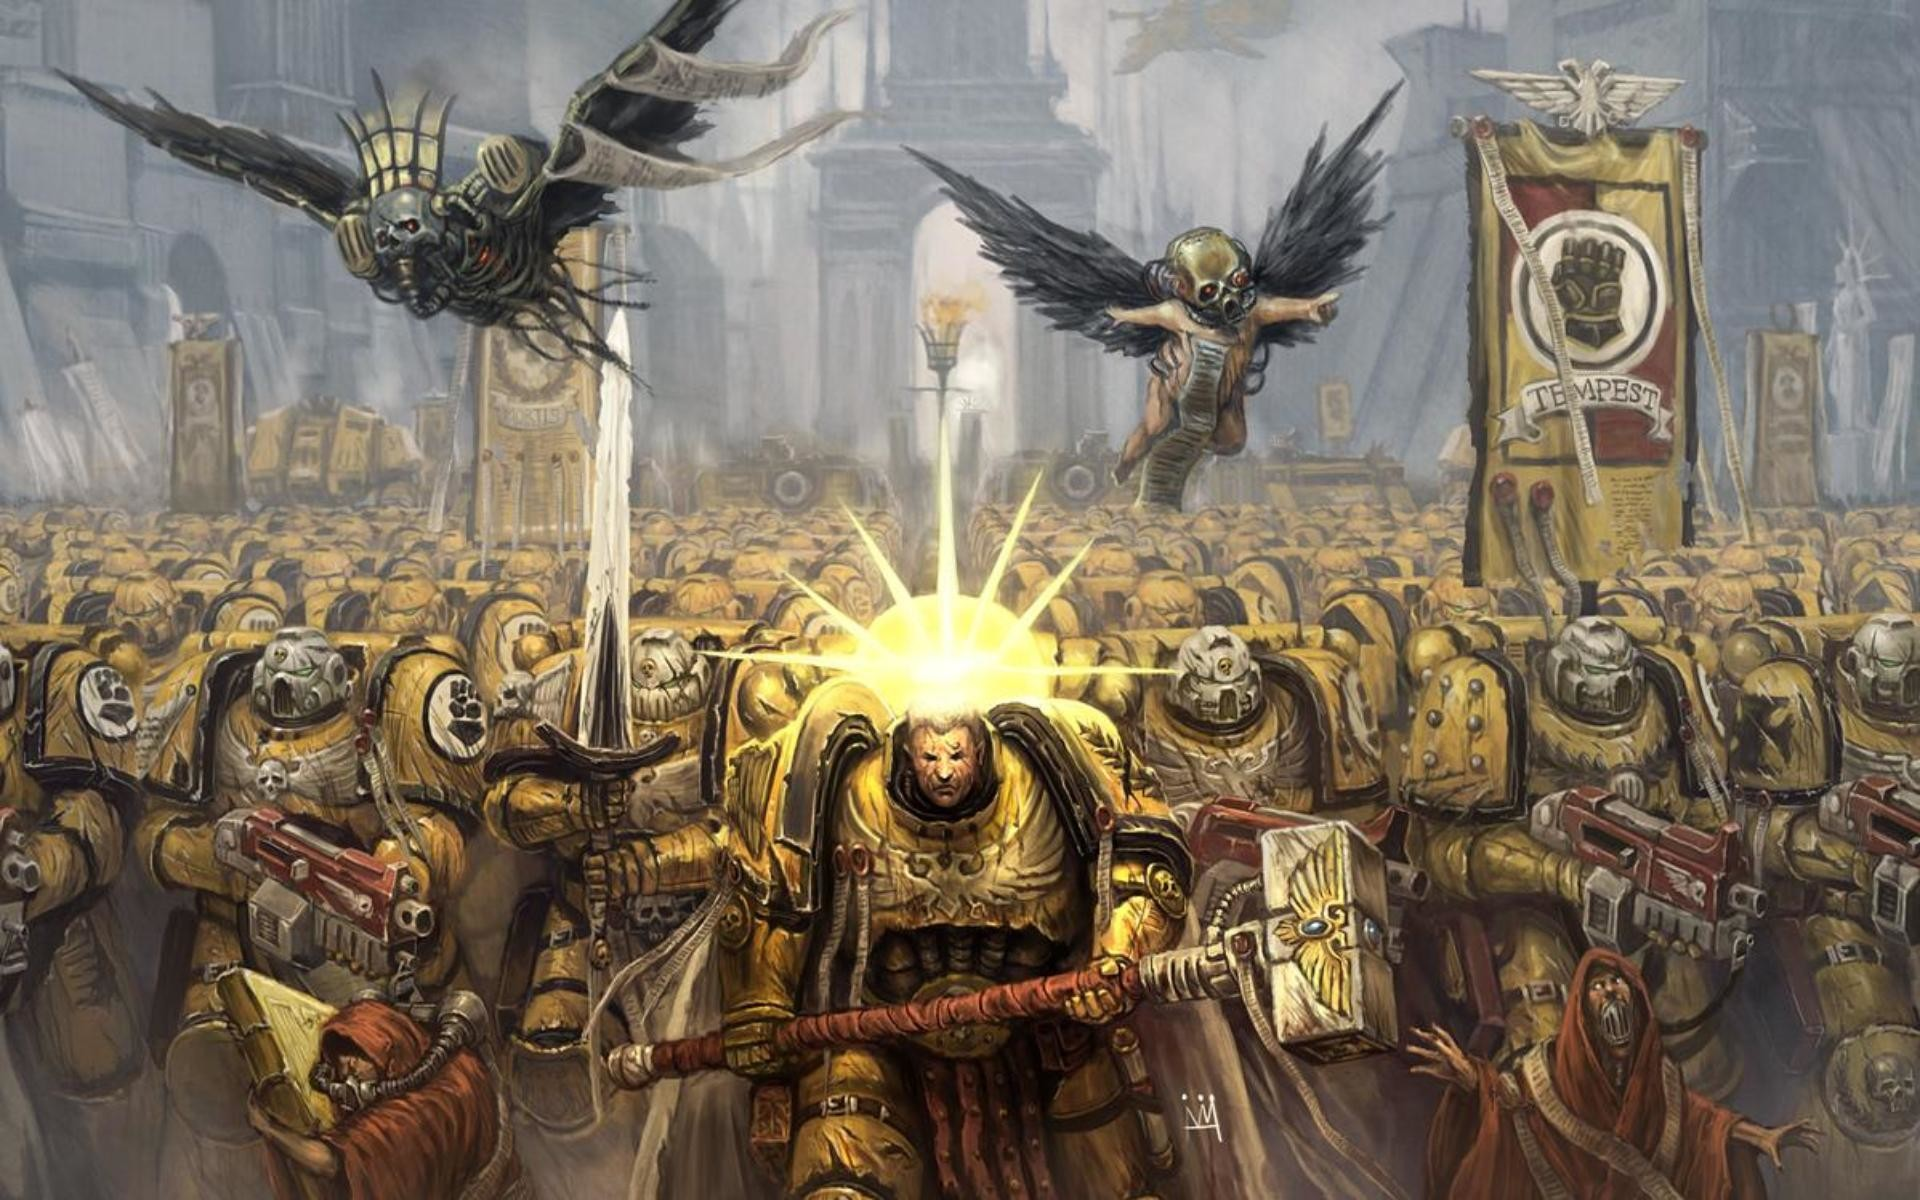 1920x1200 Imperial Fists, Warhammer 40k - Wallpapers – yoyowall.